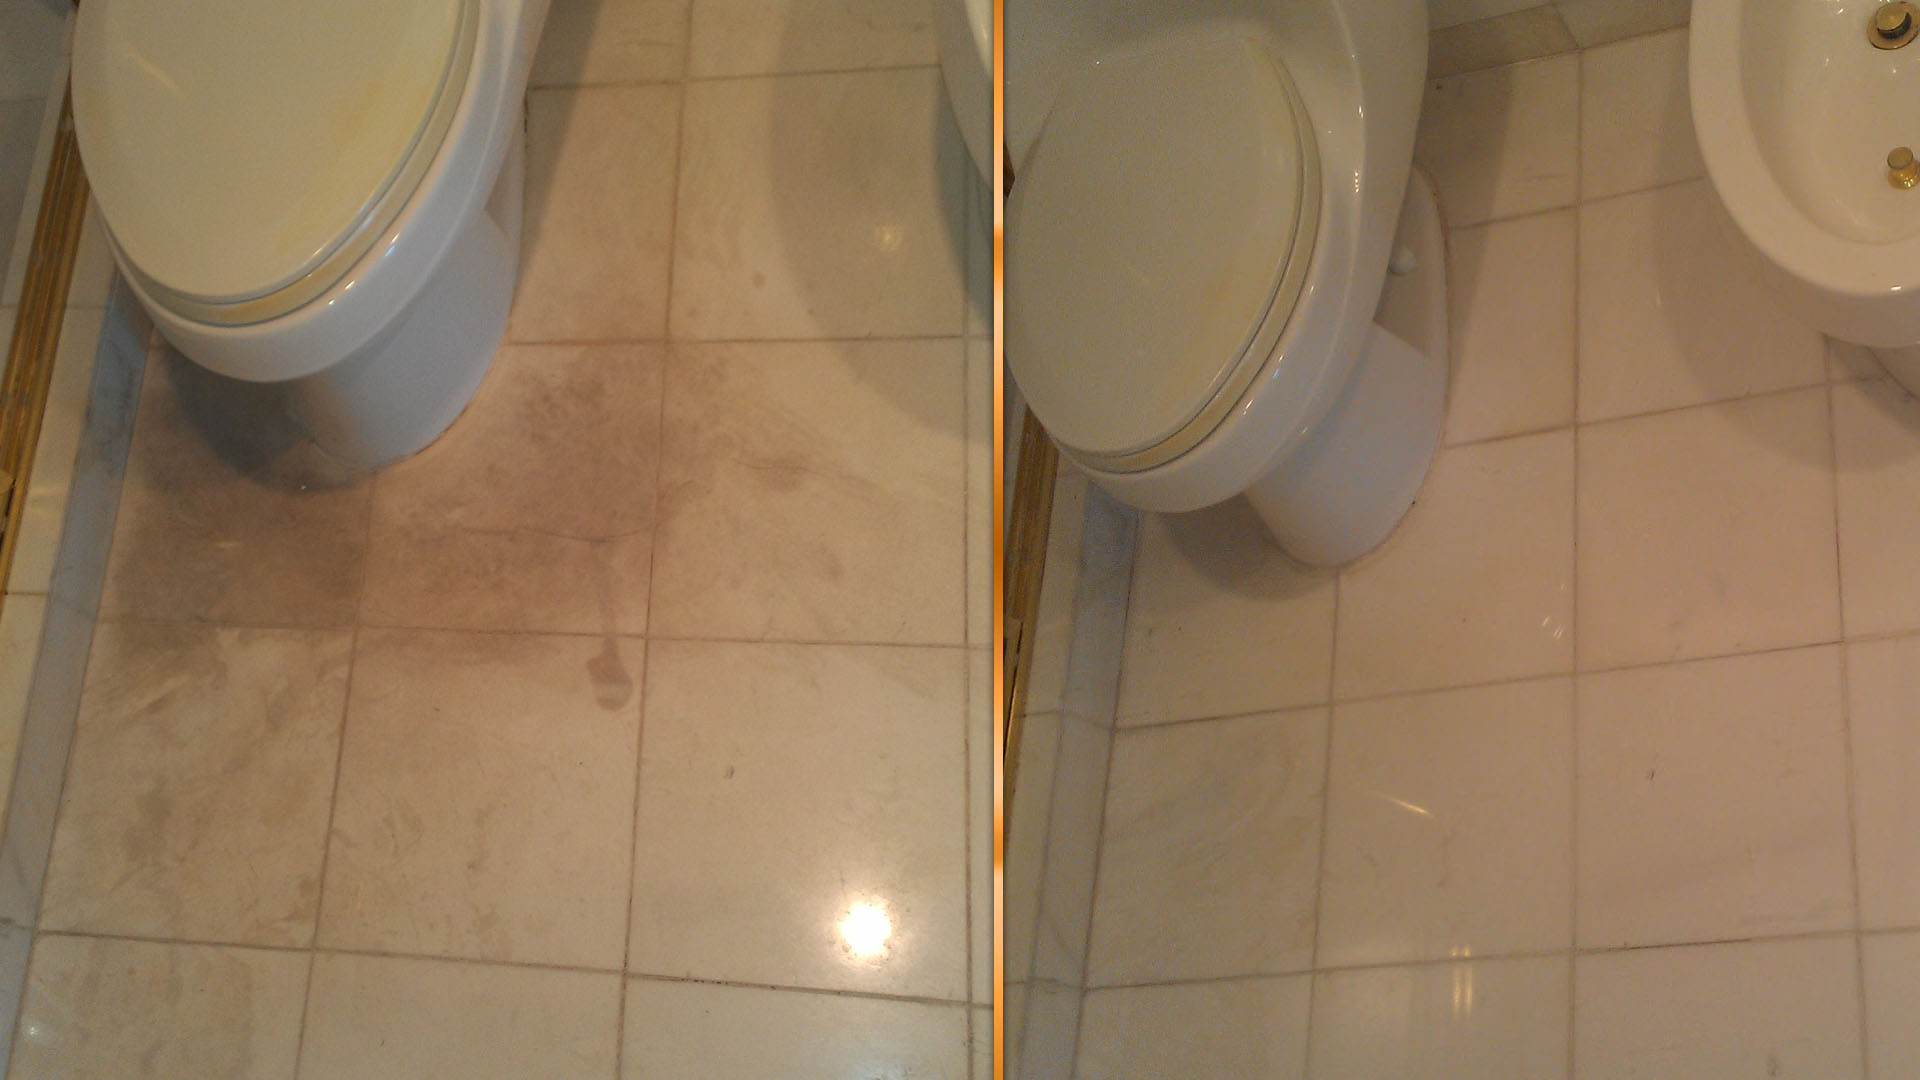 bna-bathroom-floor2-300x169